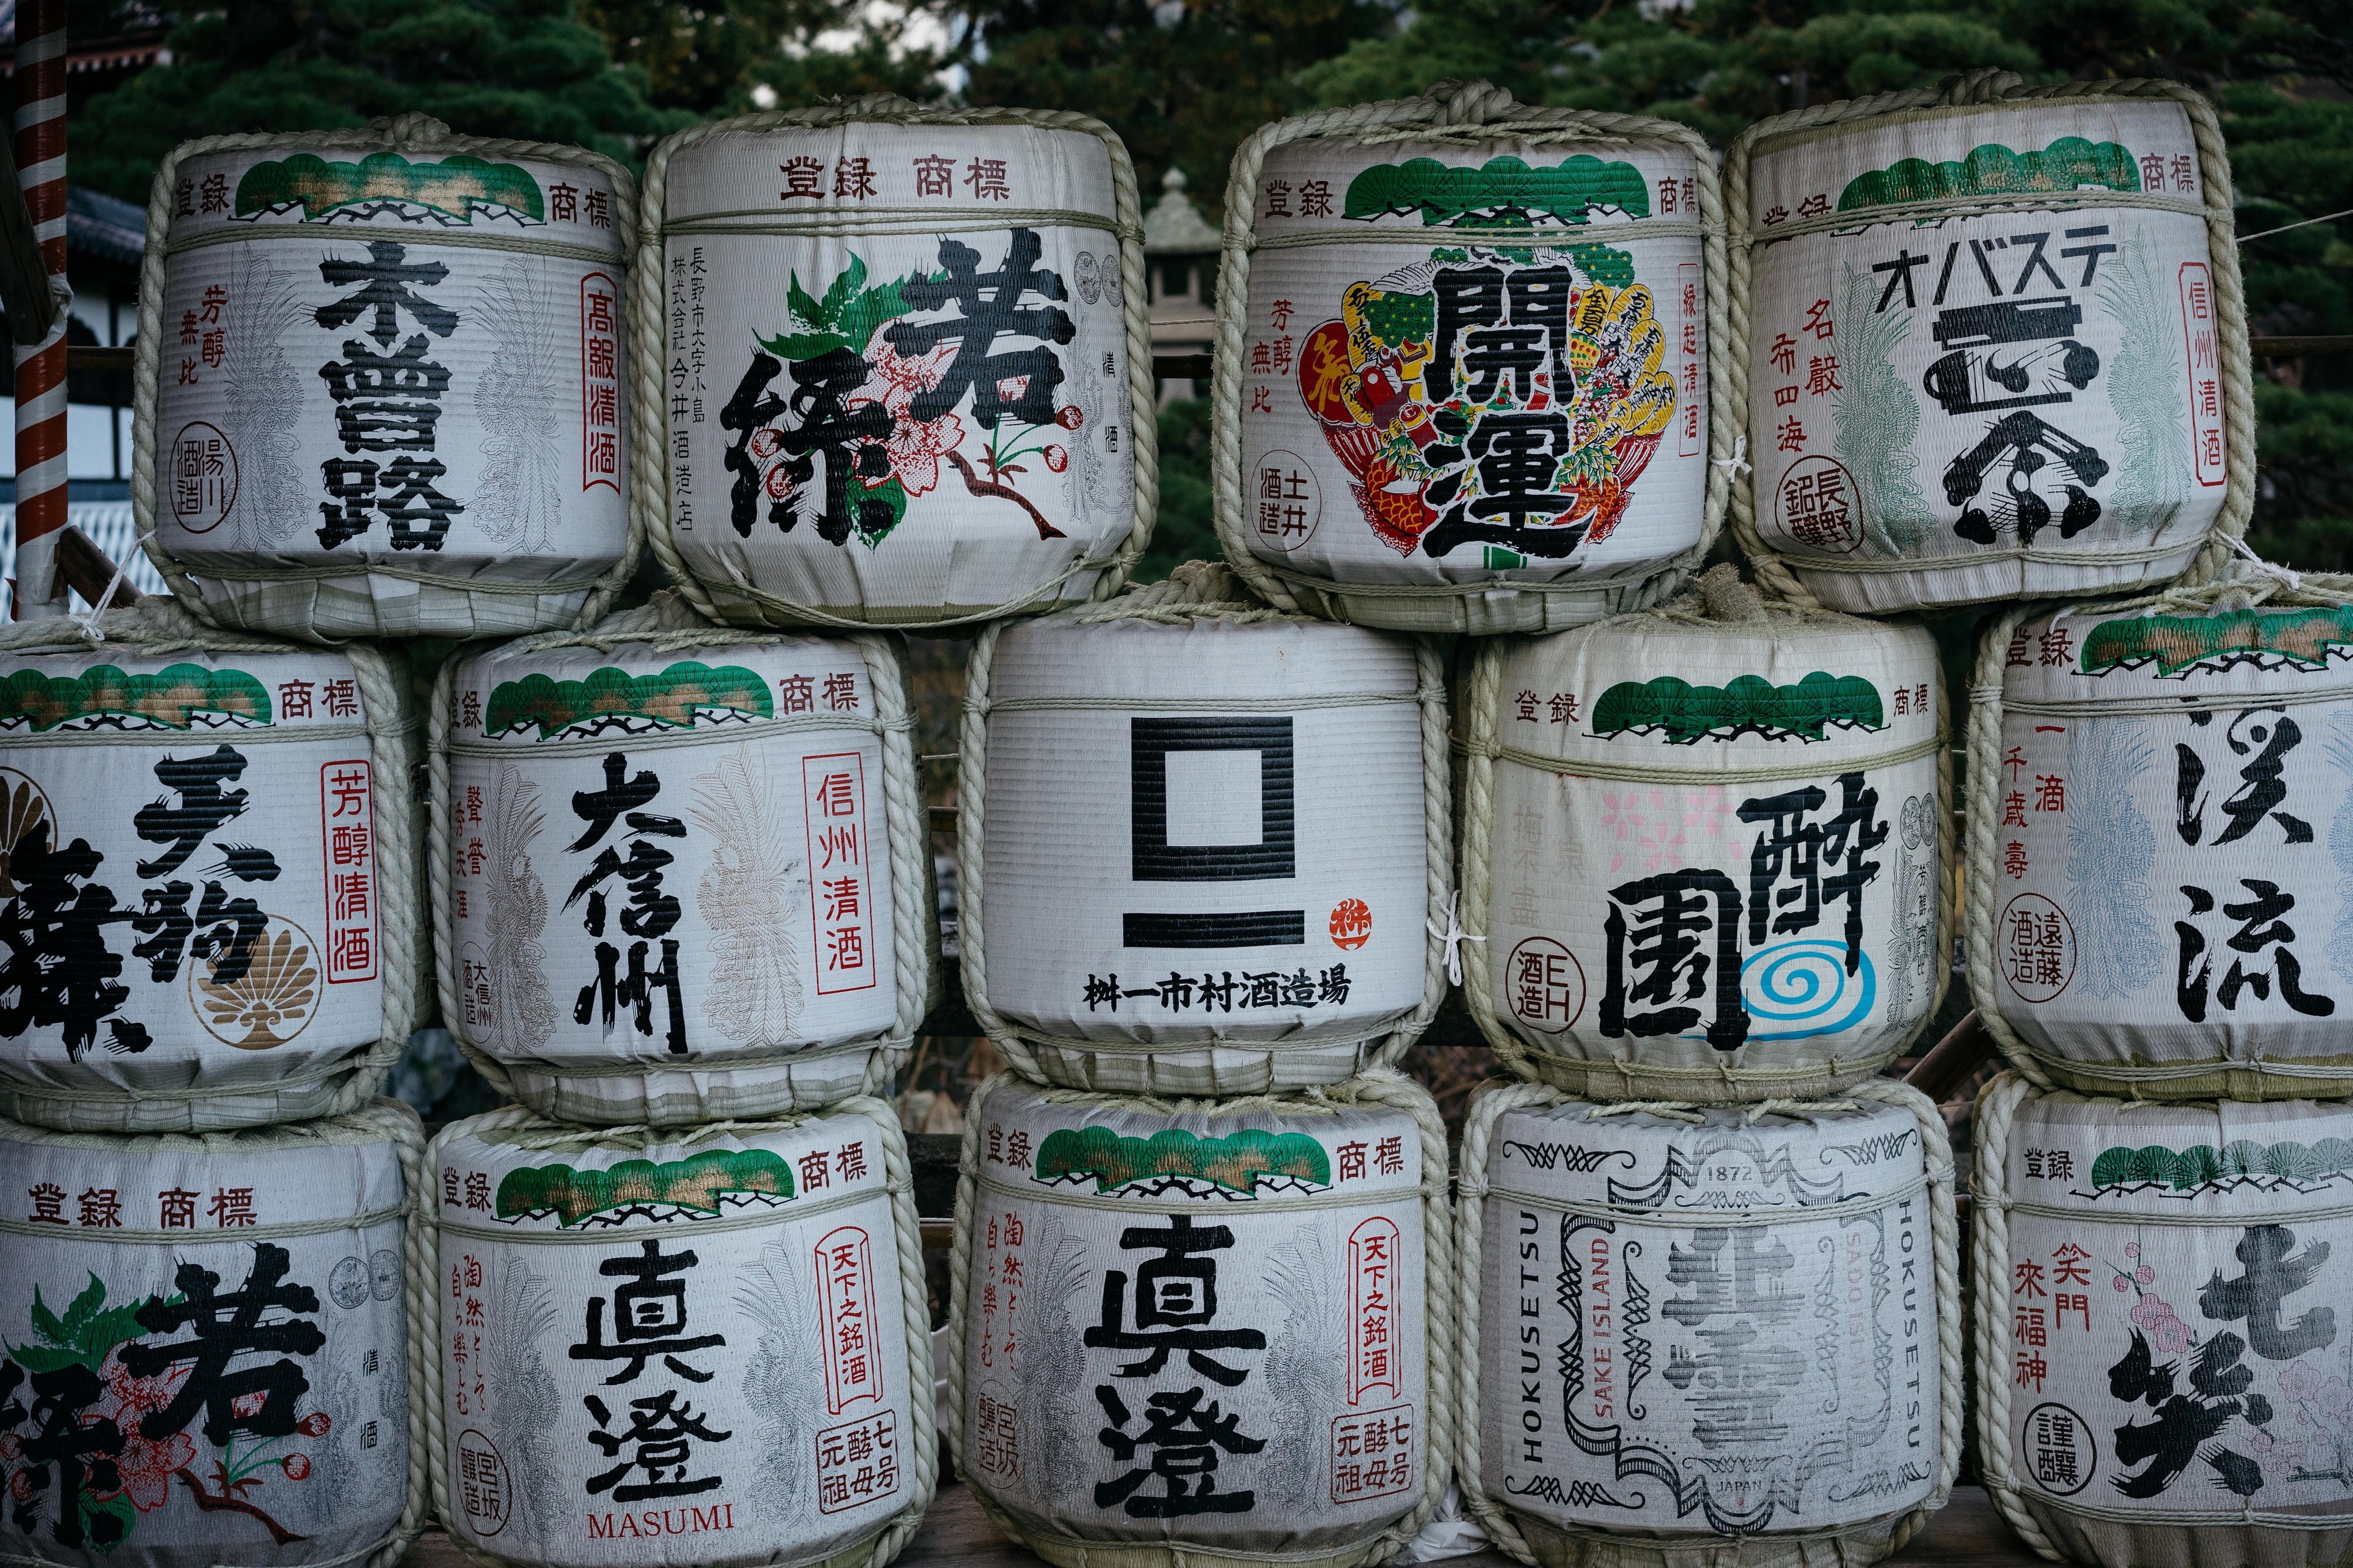 pile of white-and-green containers